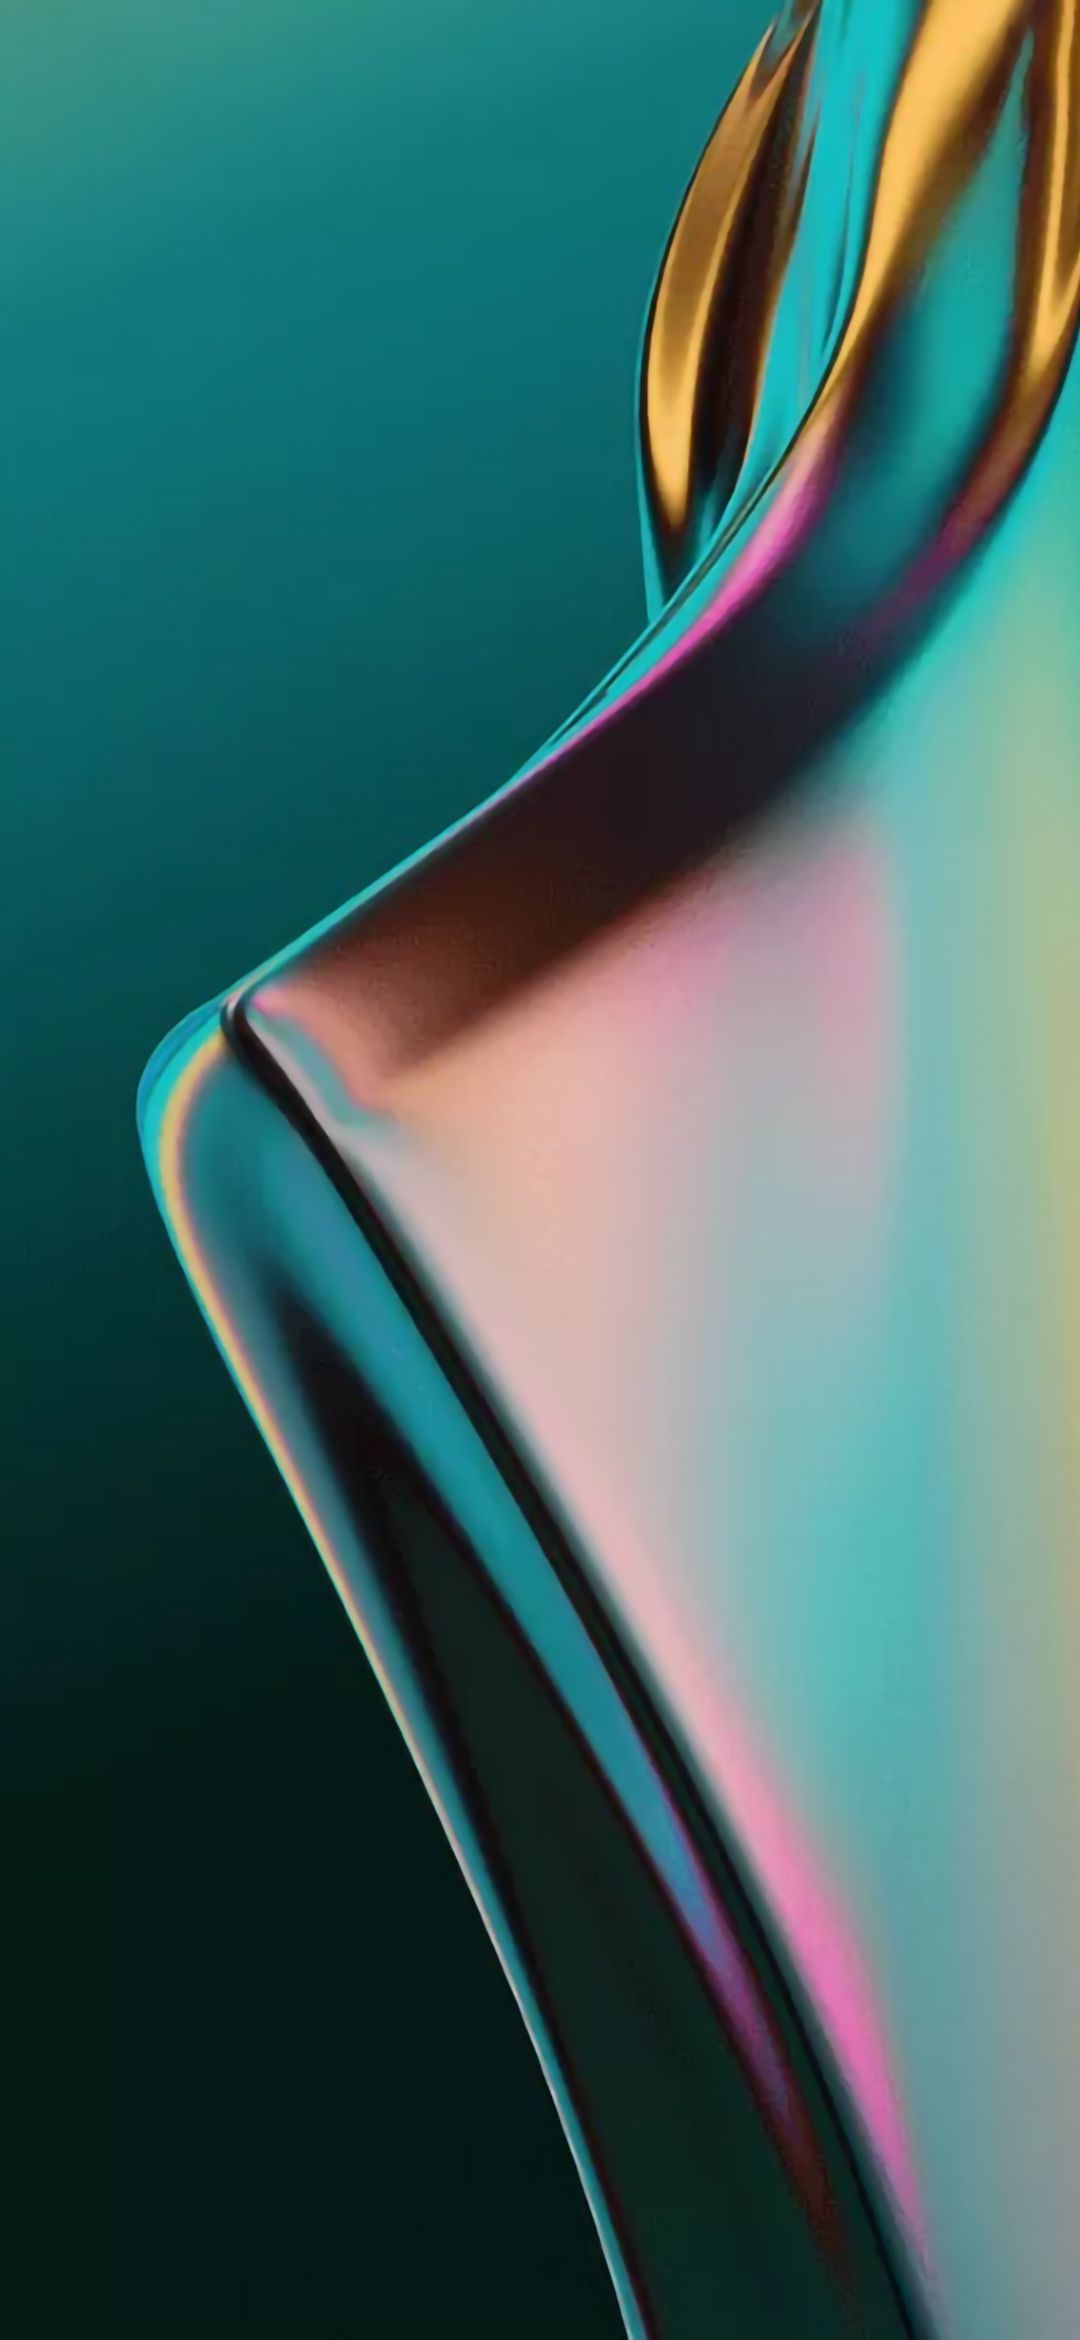 Oppo K3 Wallpaper Ytechb Exclusive Stock Wallpaper Blog Wallpaper Samsung Wallpaper